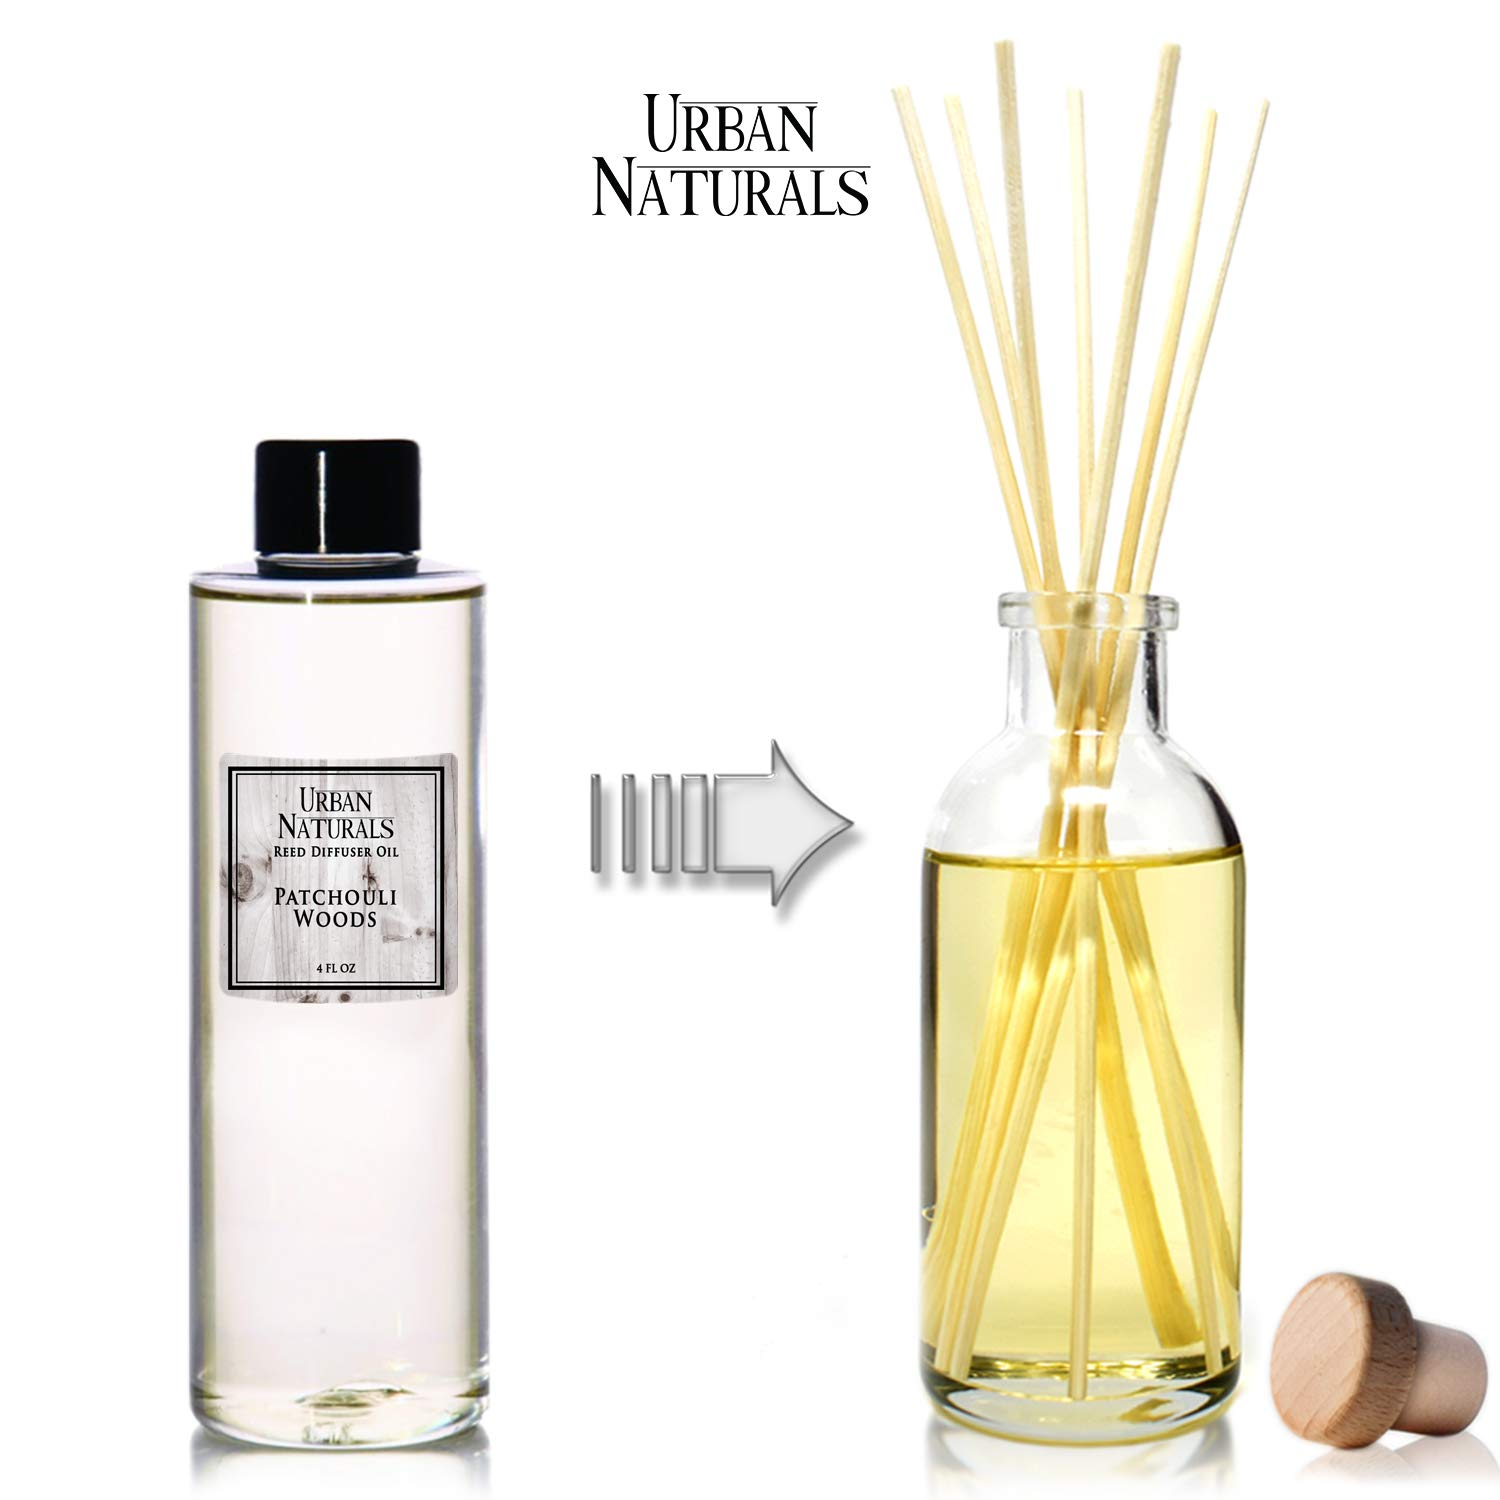 Urban Naturals Patchouli Woods Reed Diffuser Refill Oil with Replacement Sticks Kit | Sandalwood, Patchouli & Ylang Ylang Room Scent. Vegan. Made in The USA by Urban Naturals (Image #2)